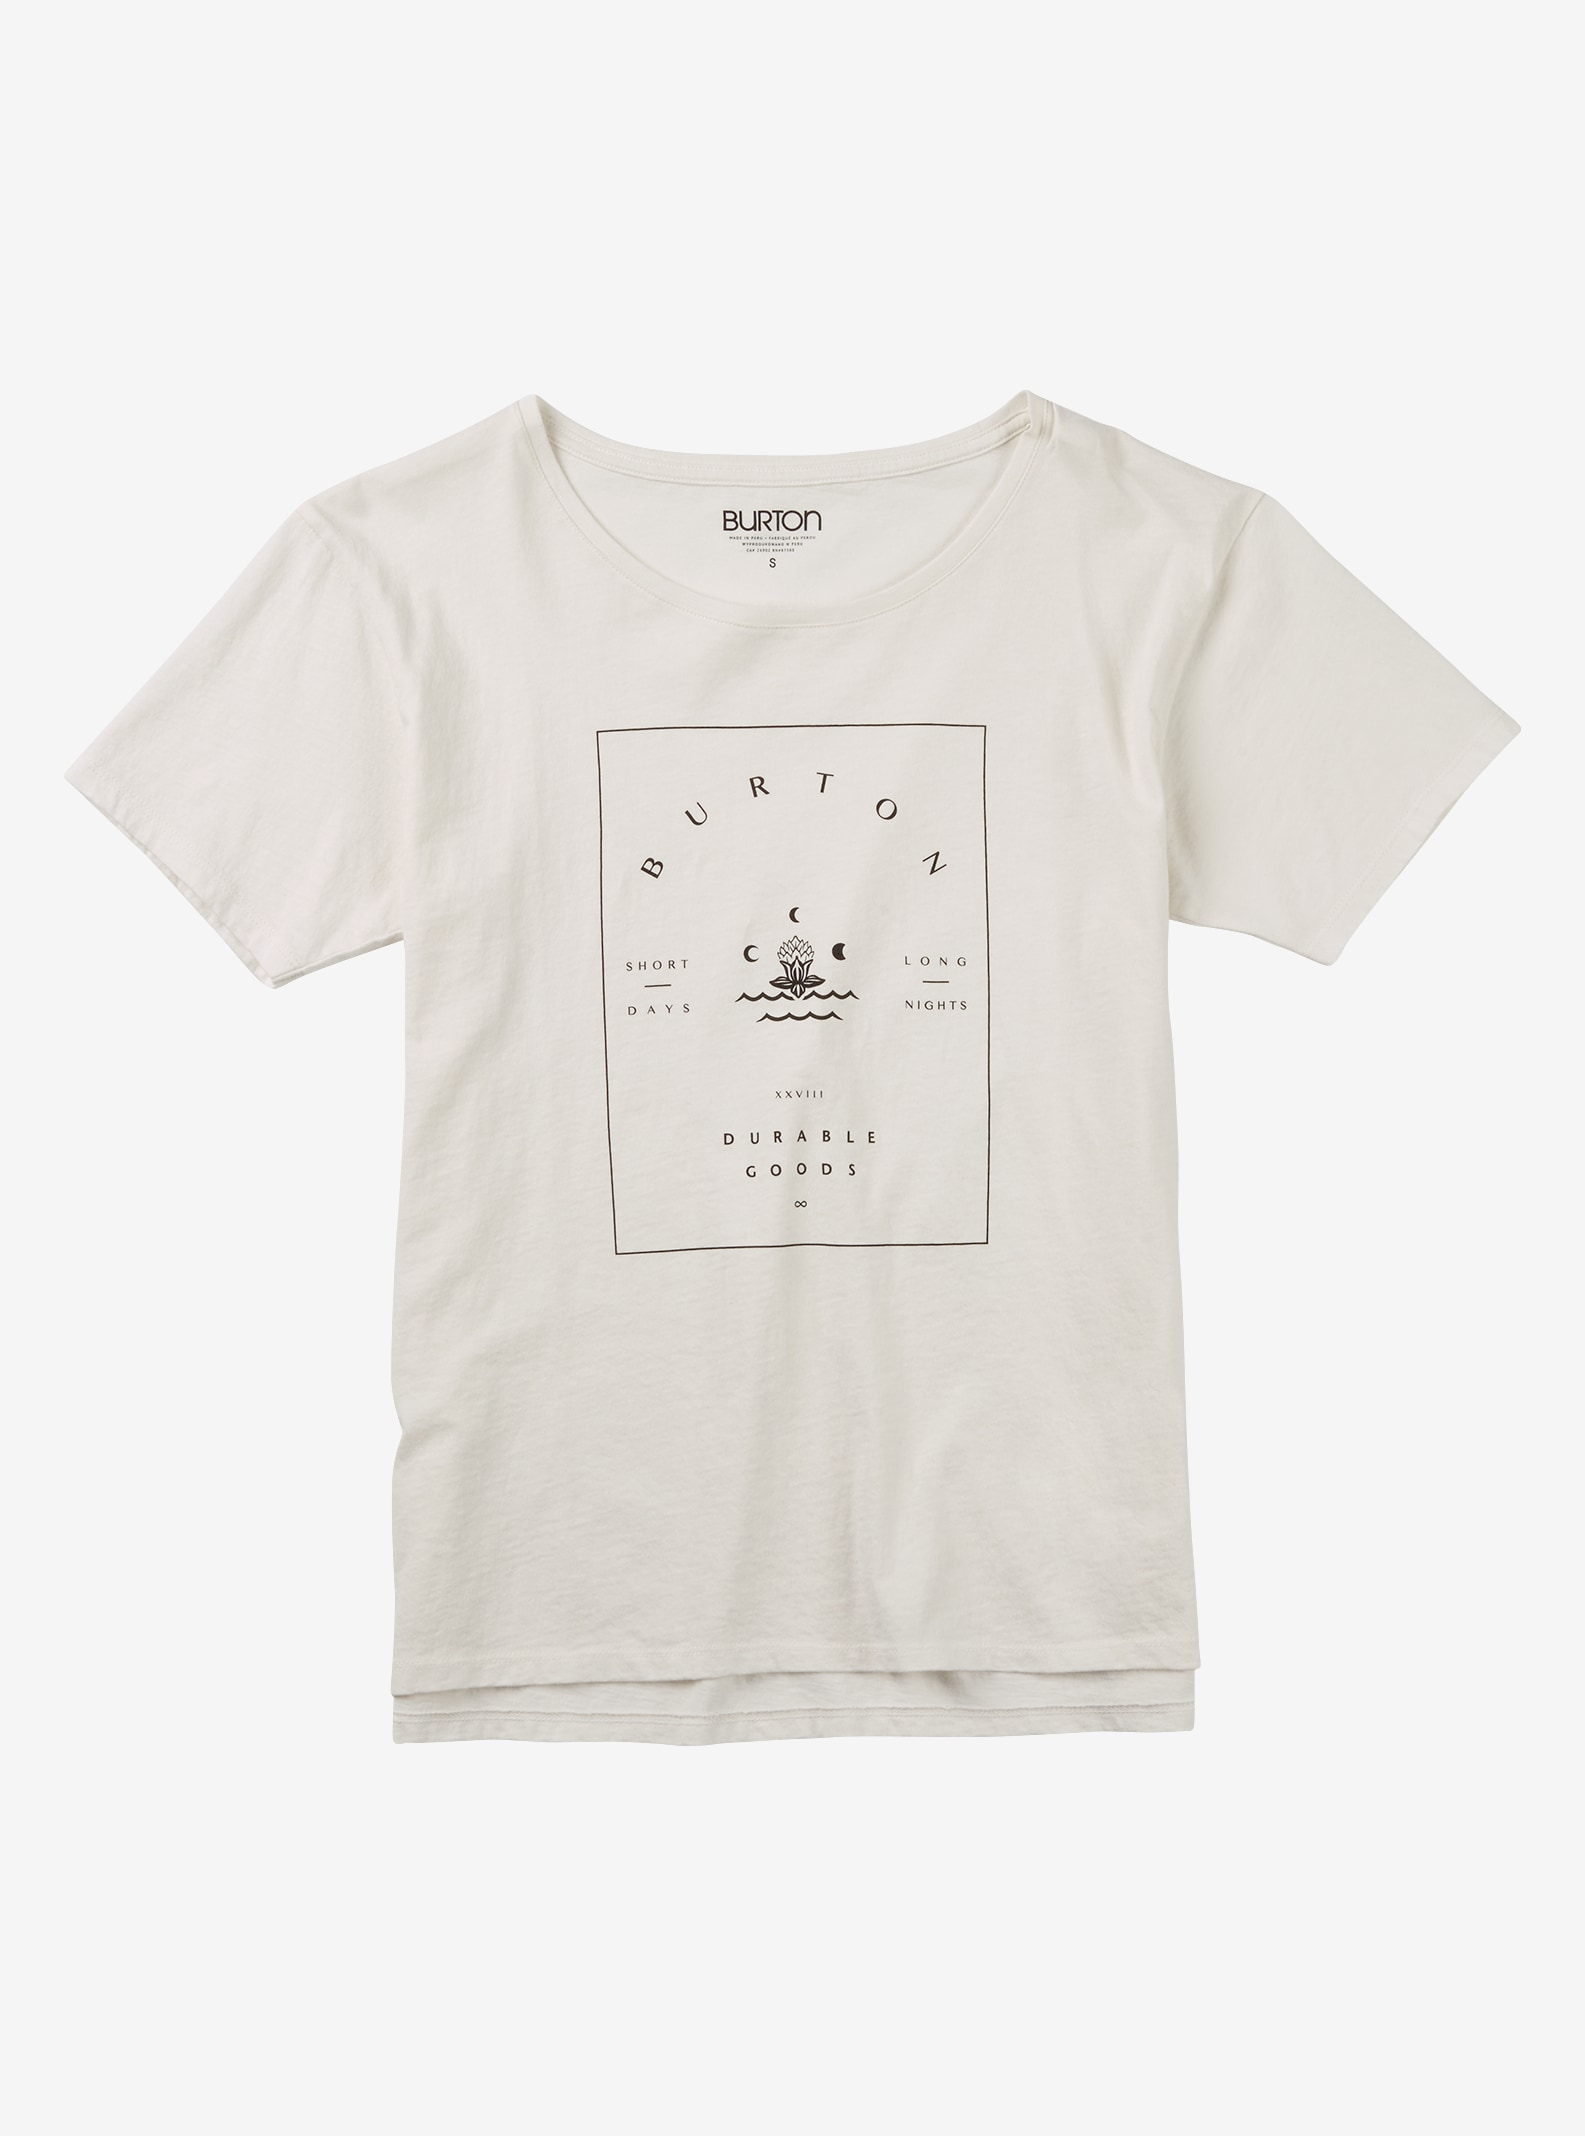 Burton Night Lily T Shirt shown in Stout White